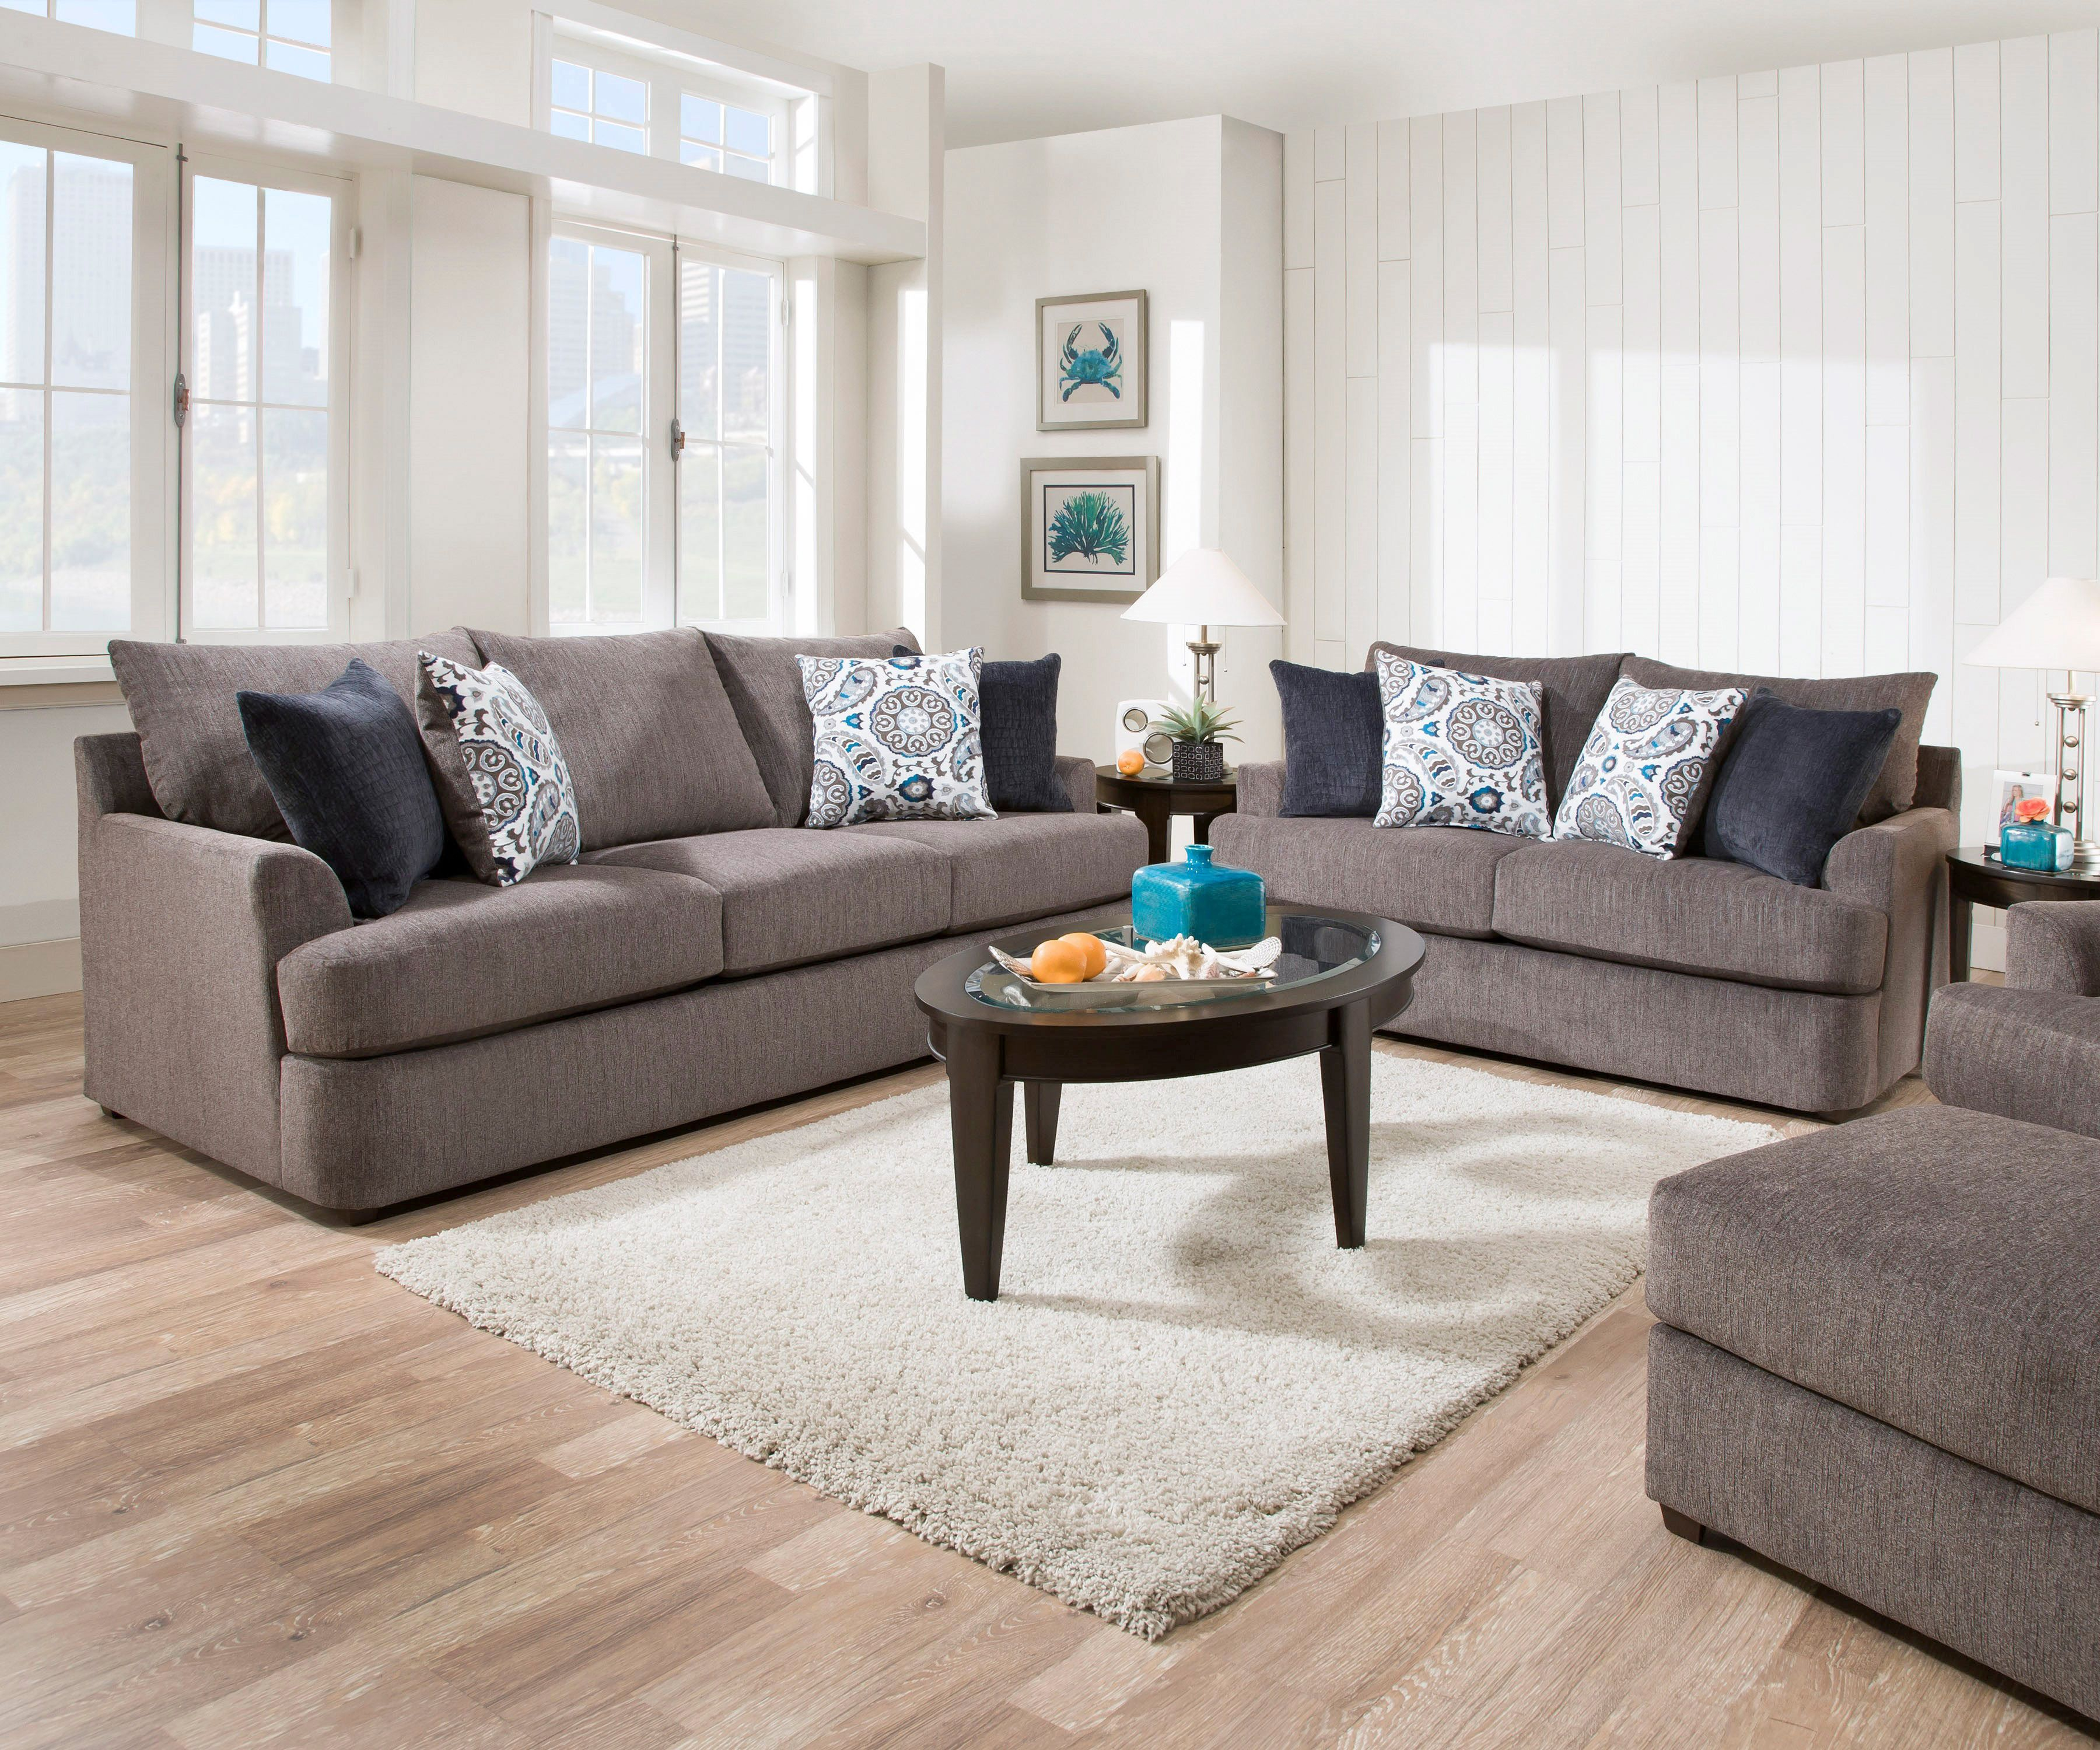 affordable furniture sensations red brick sofa. Downing Sofa Set In Charcoal | Jackson Furniture Home Gallery Stores Living Room Inspiration Pinterest Set, And Affordable Sensations Red Brick